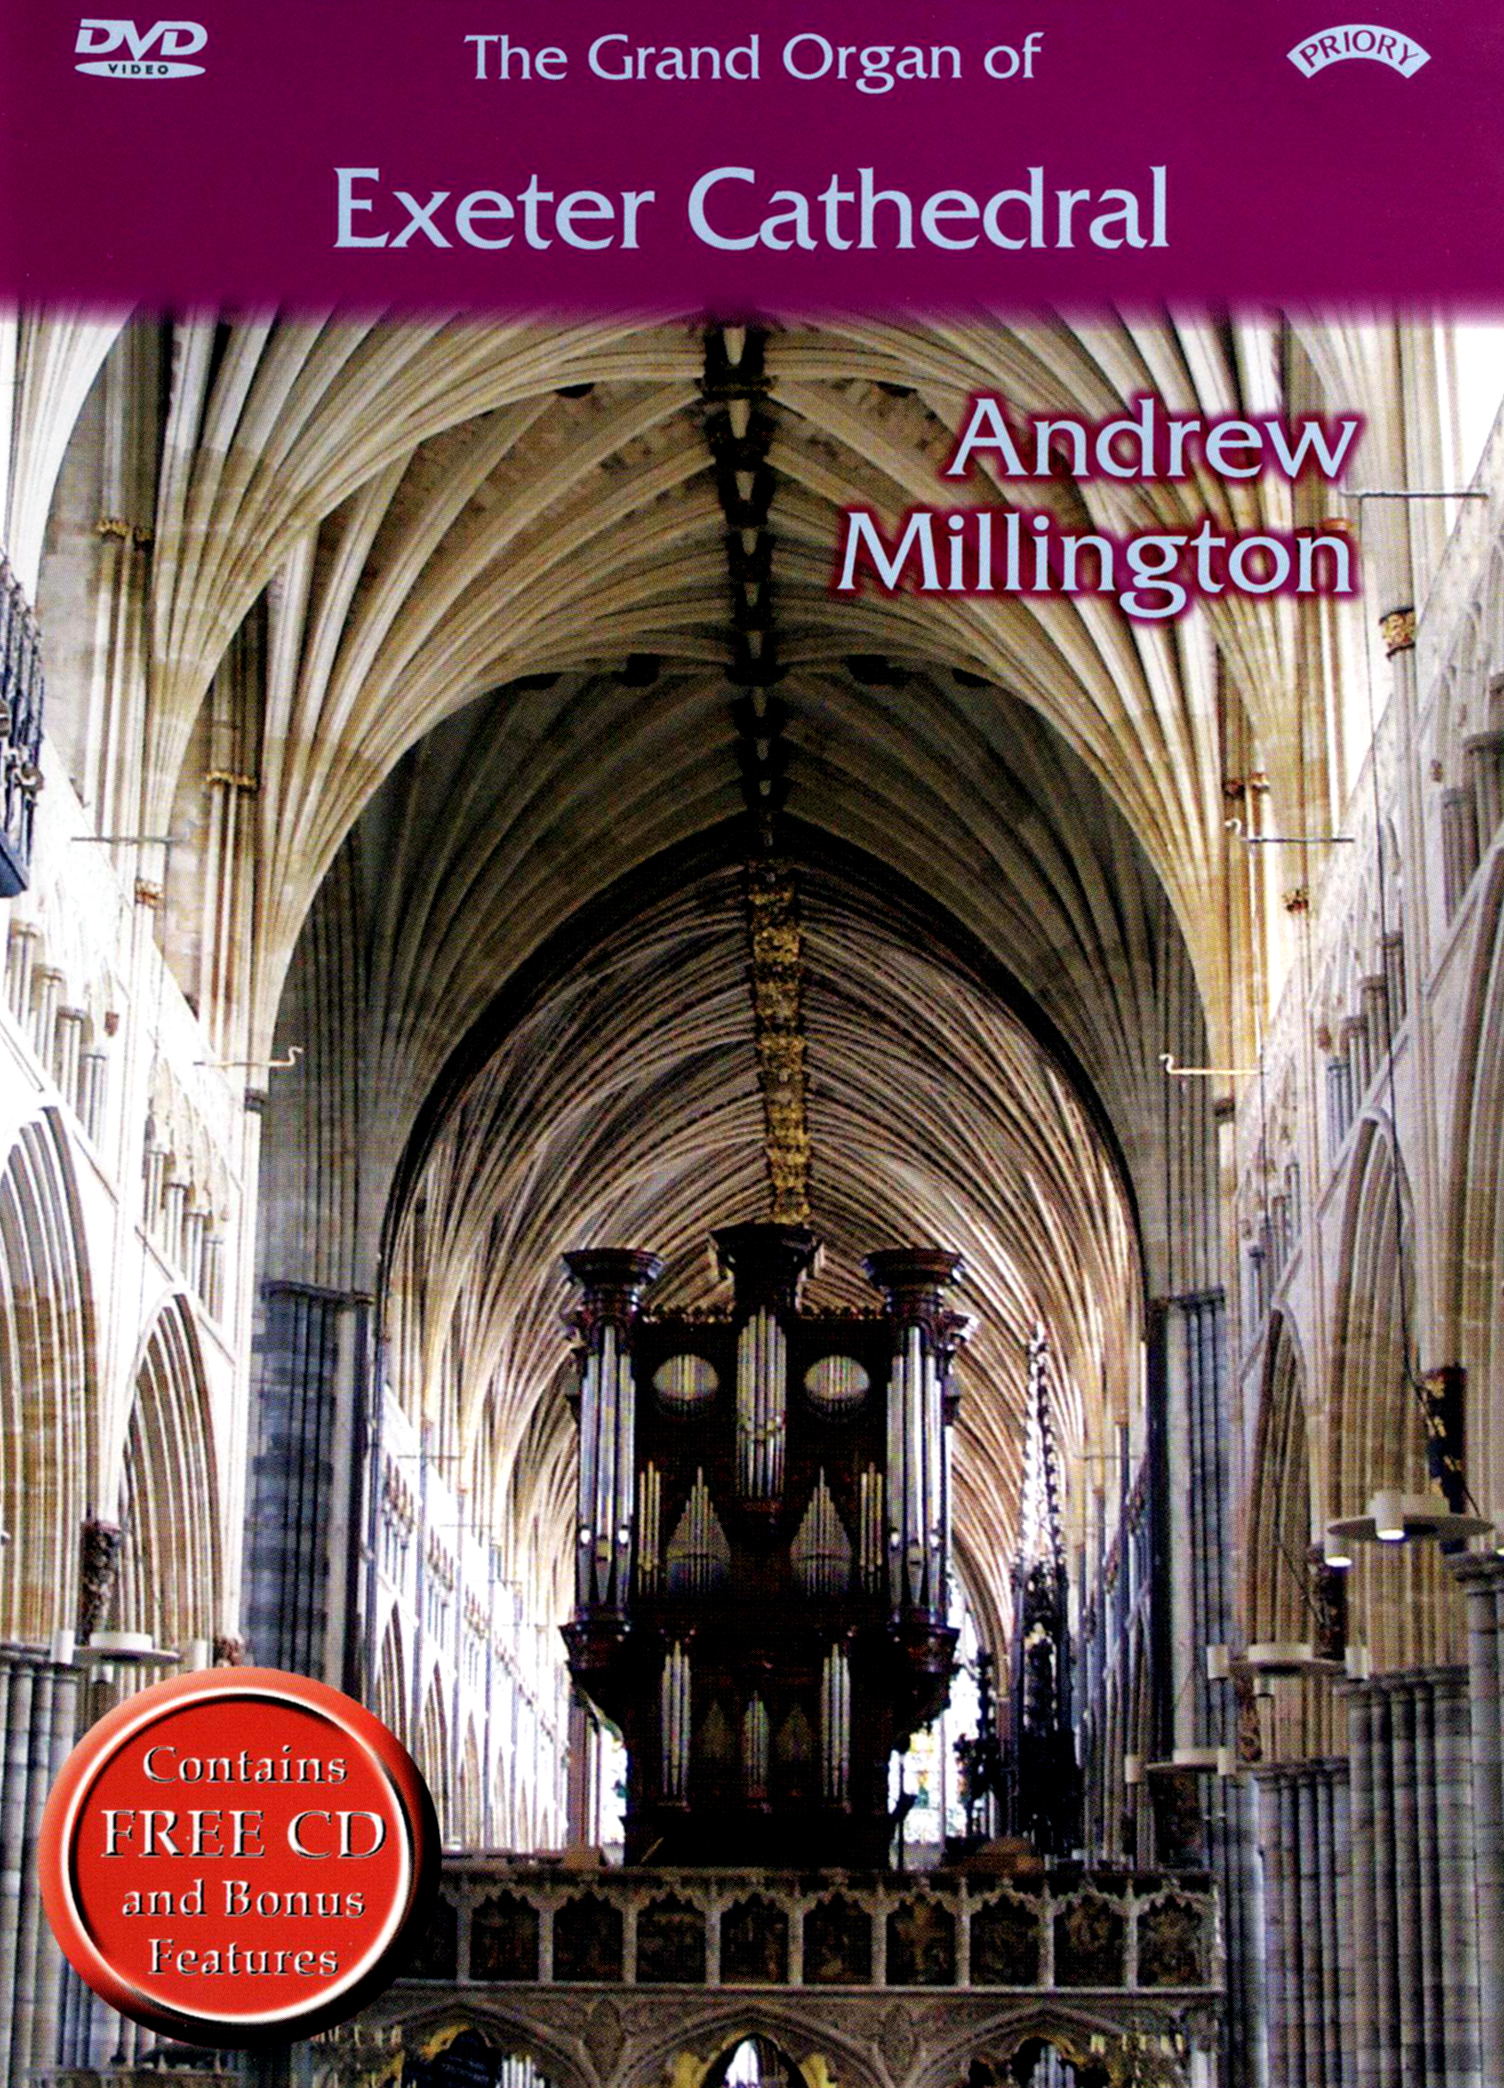 Andrew Millington: The Grand Organ of Exeter Cathedral